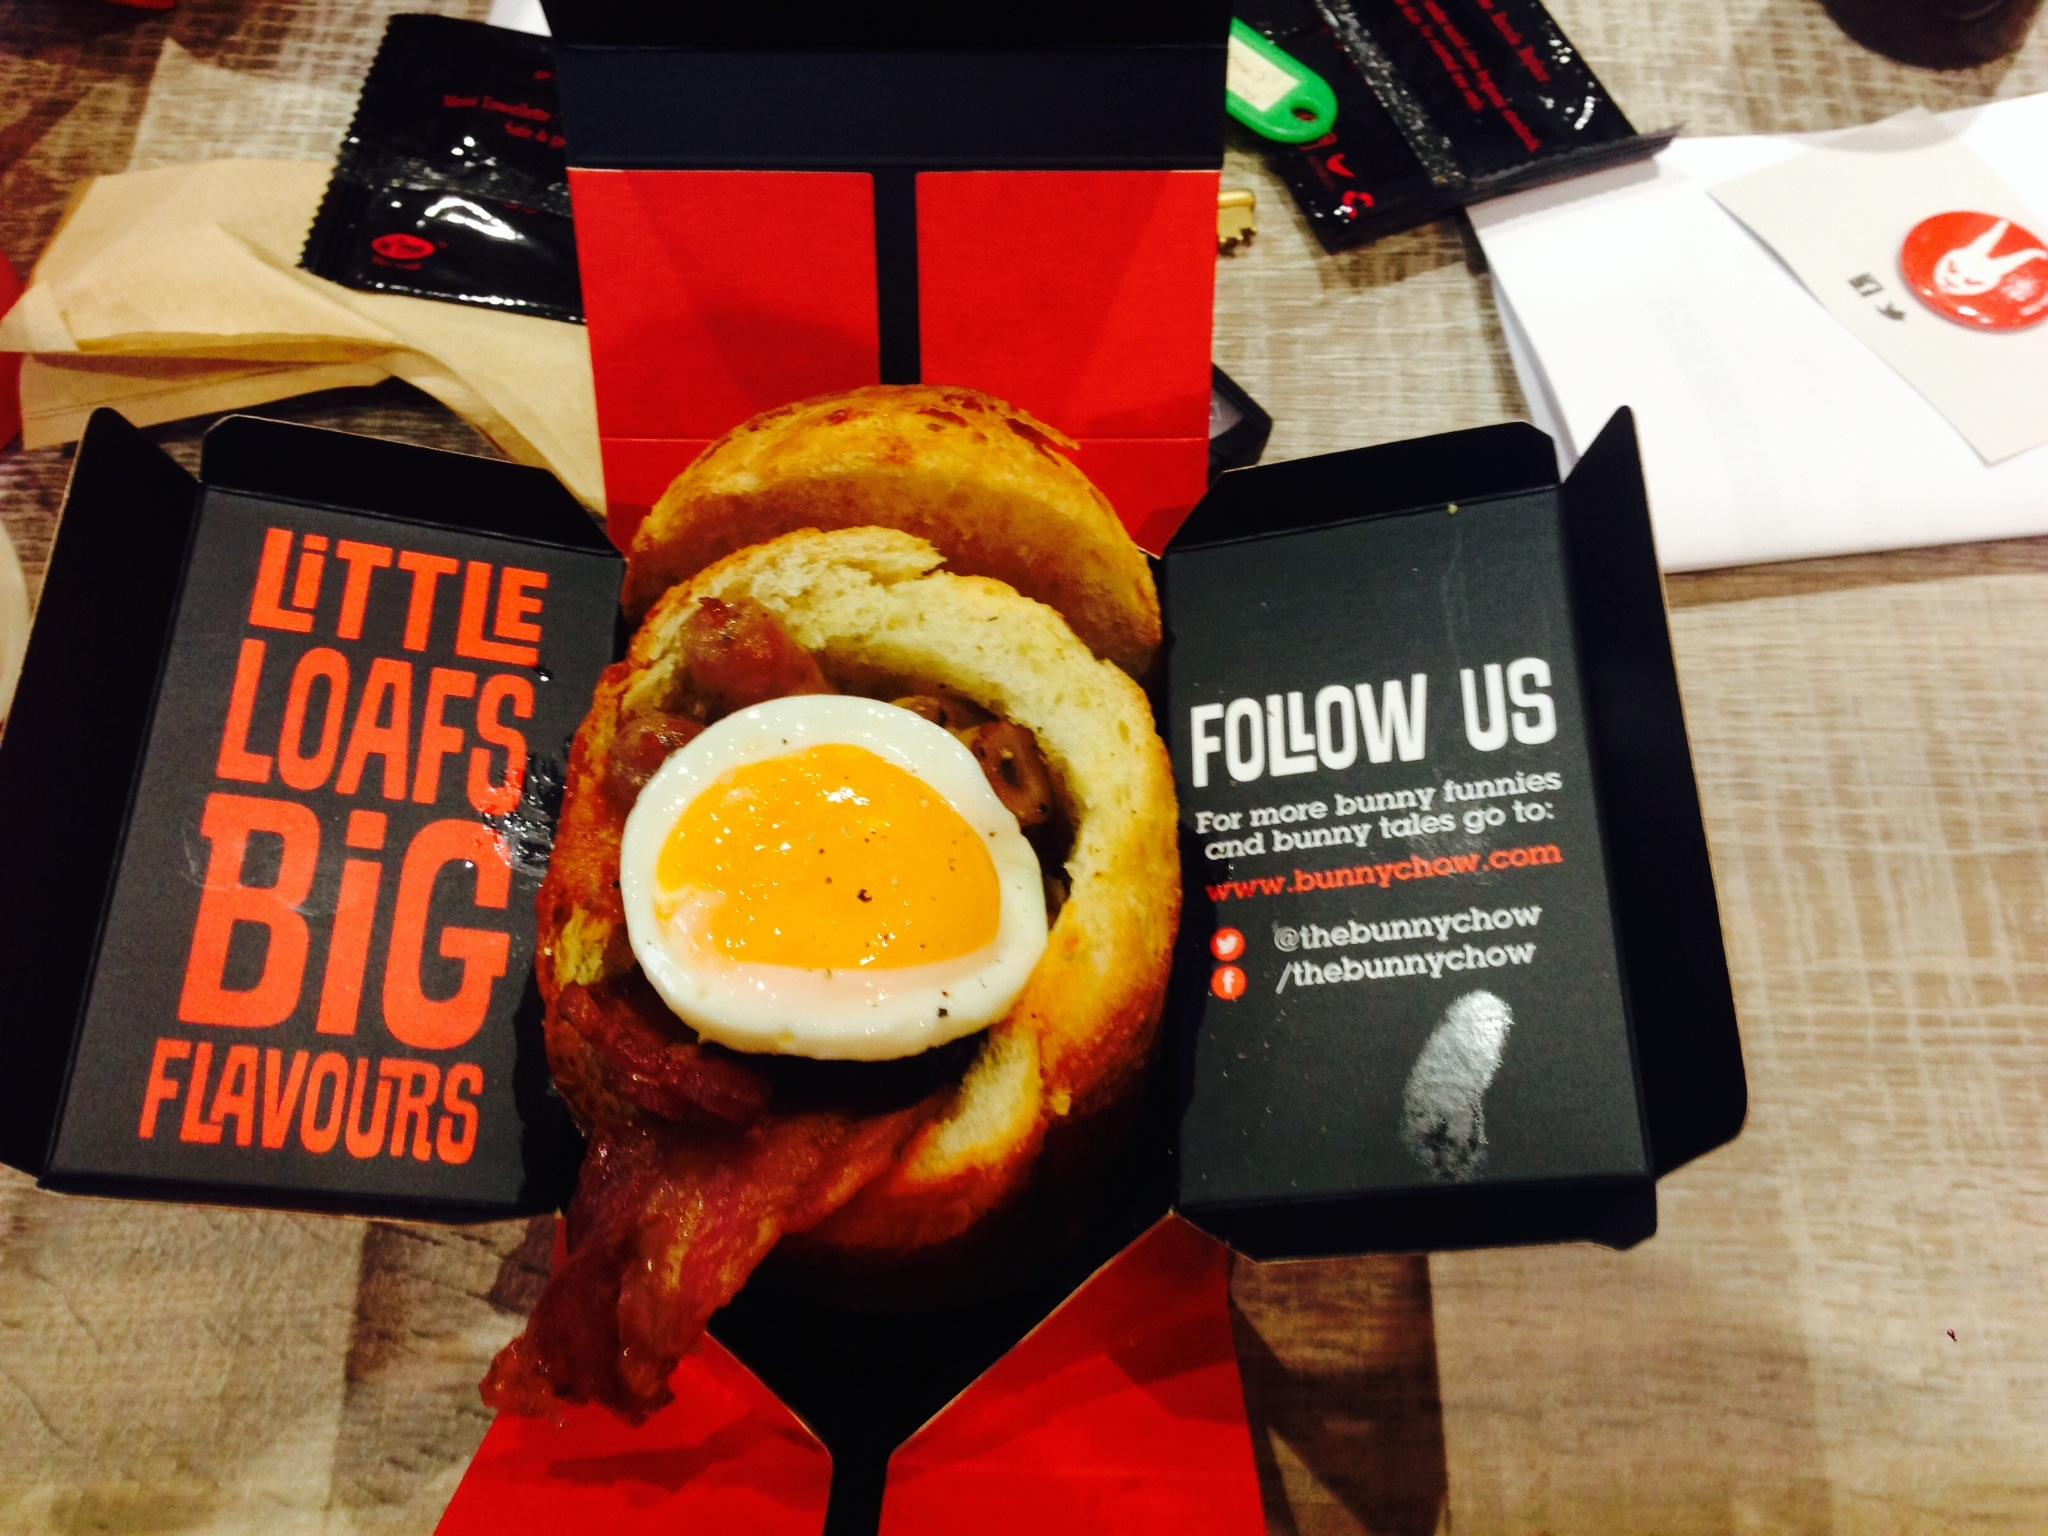 Thanks to @thebunnychow for the delicious breakfast! http://t.co/AmhcLoCeBB